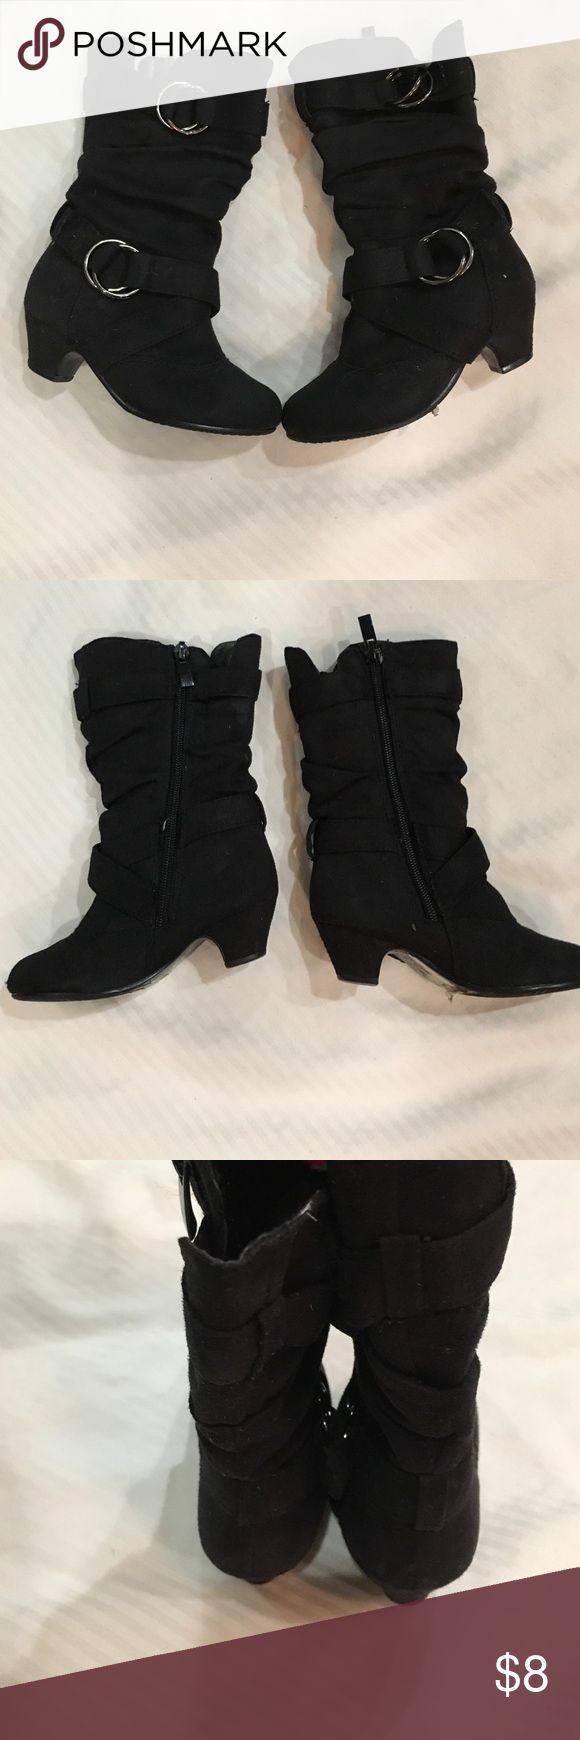 toddler girls size 7 black boots wl a tiny heel for a lil lady Shoes Boots